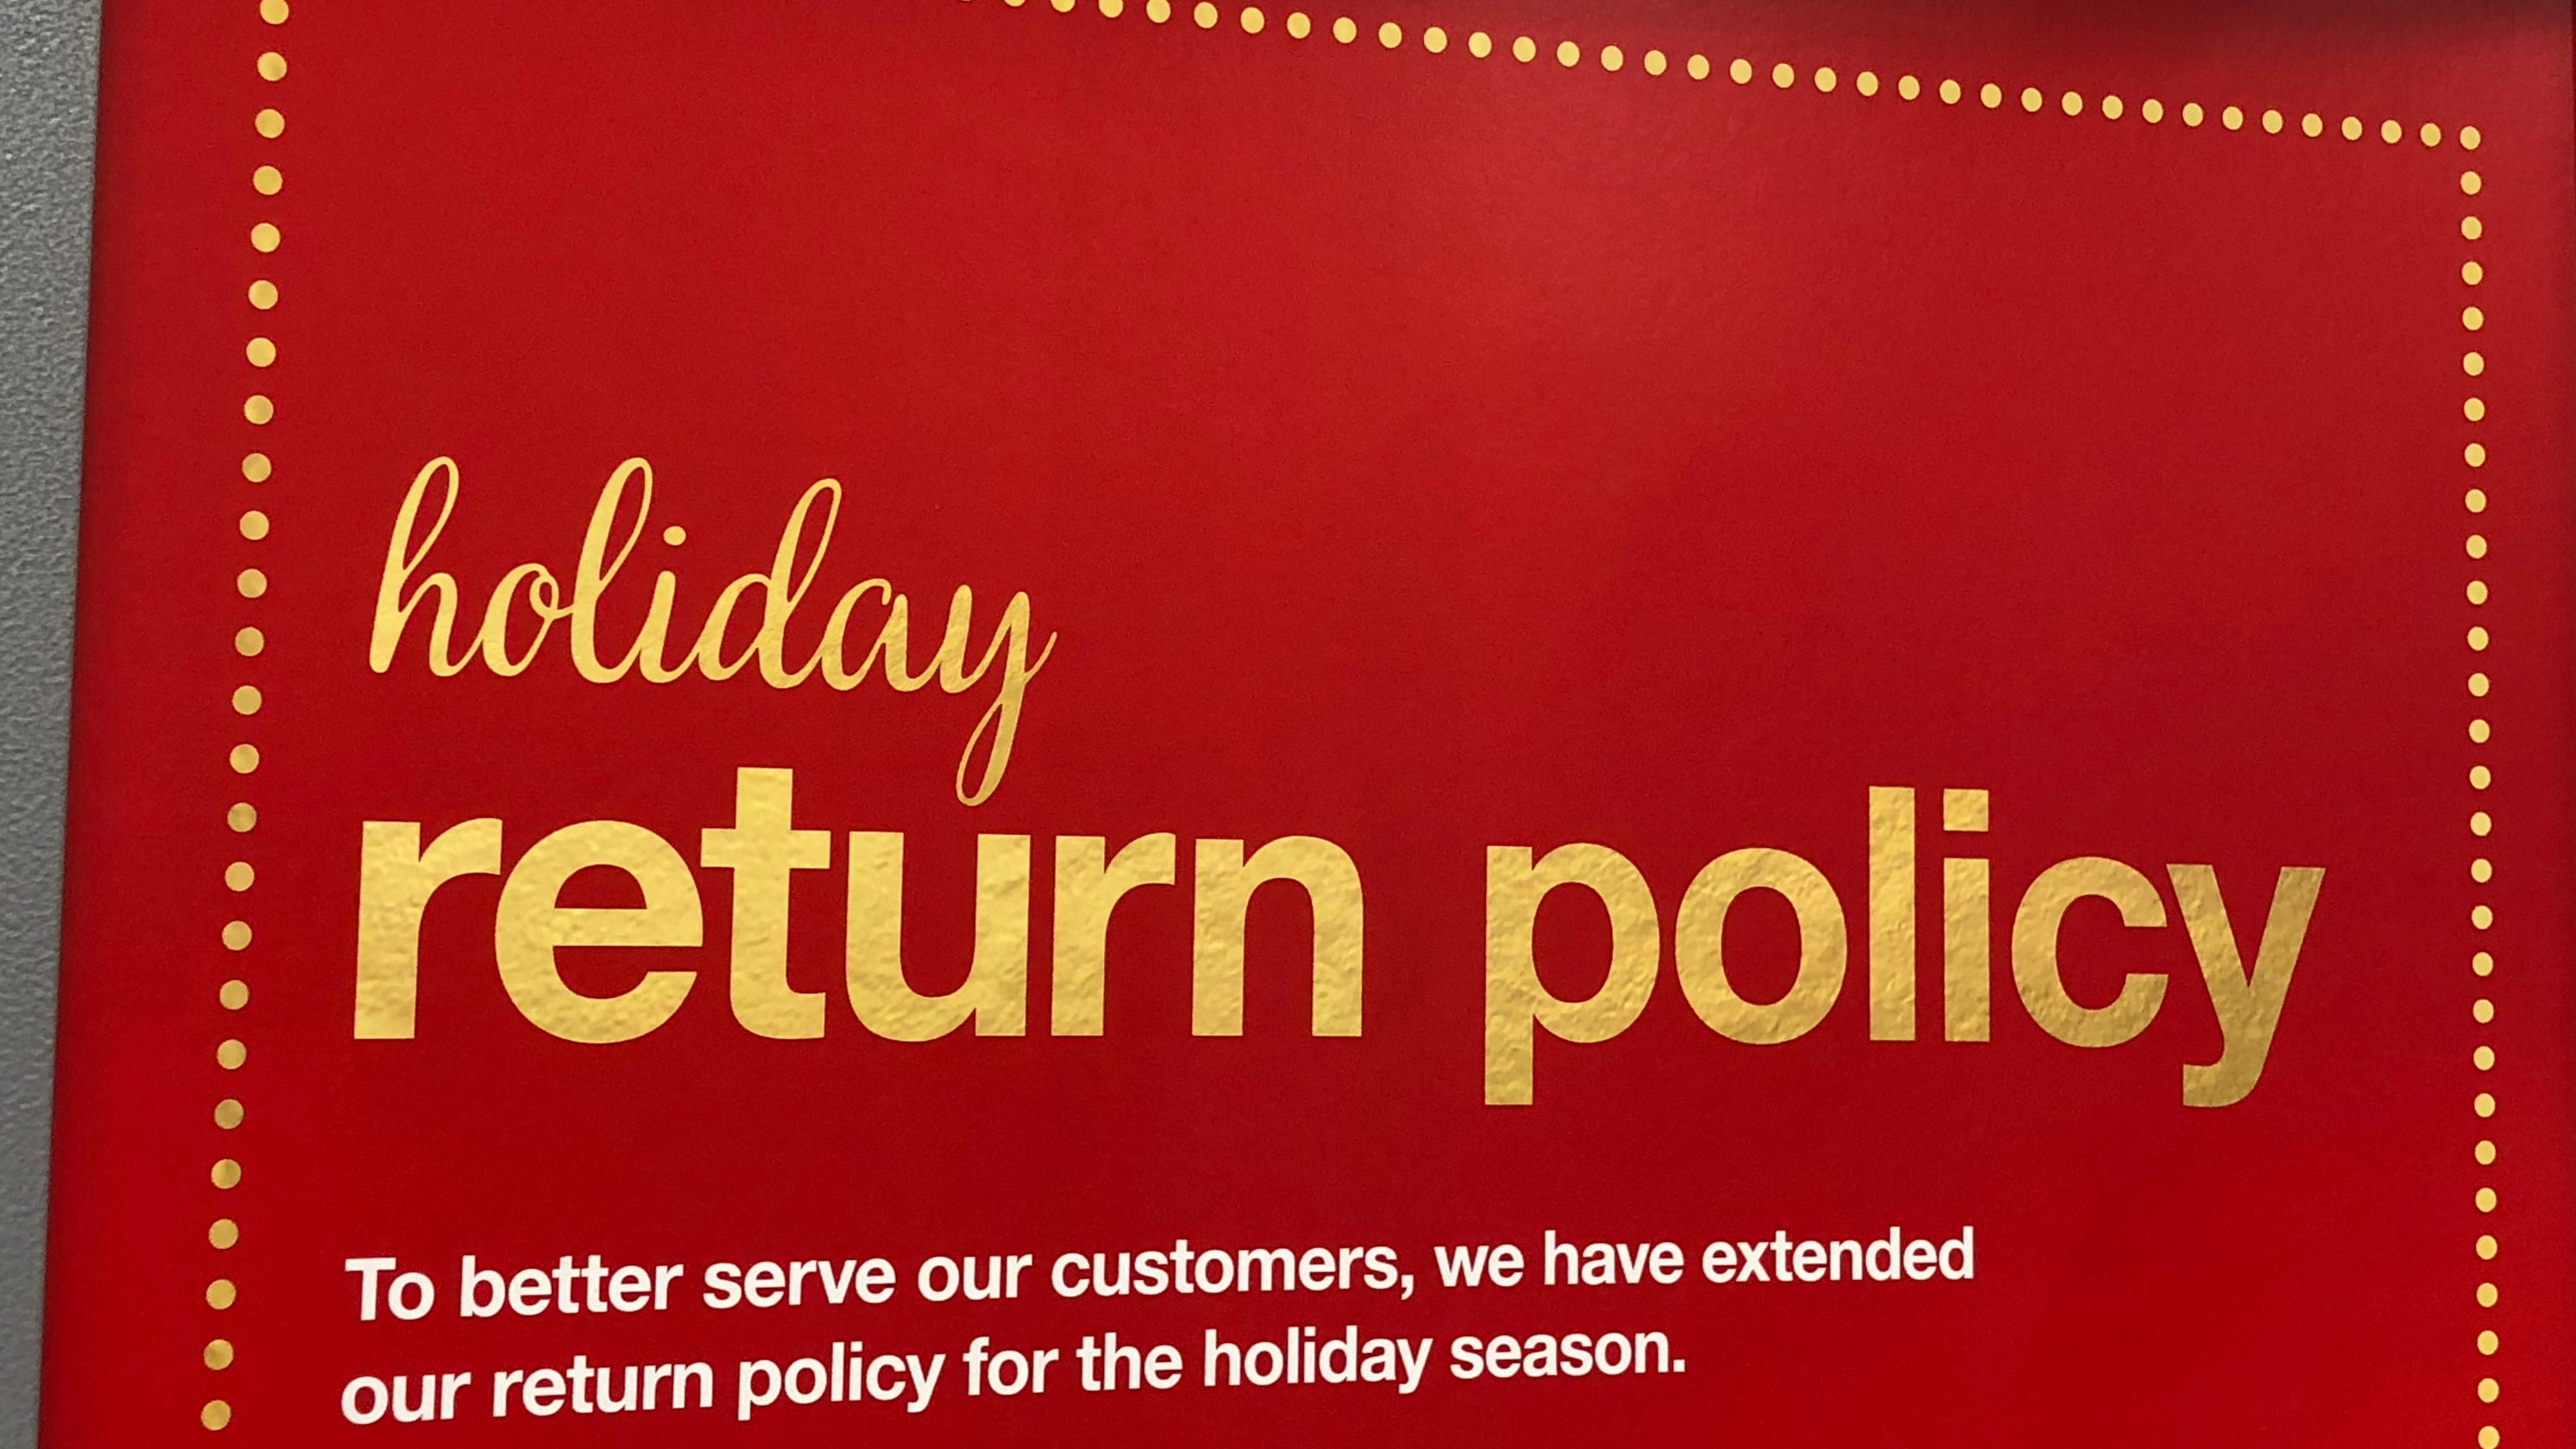 Didn't get what you want for Christmas? Thursday is a huge day for making returns